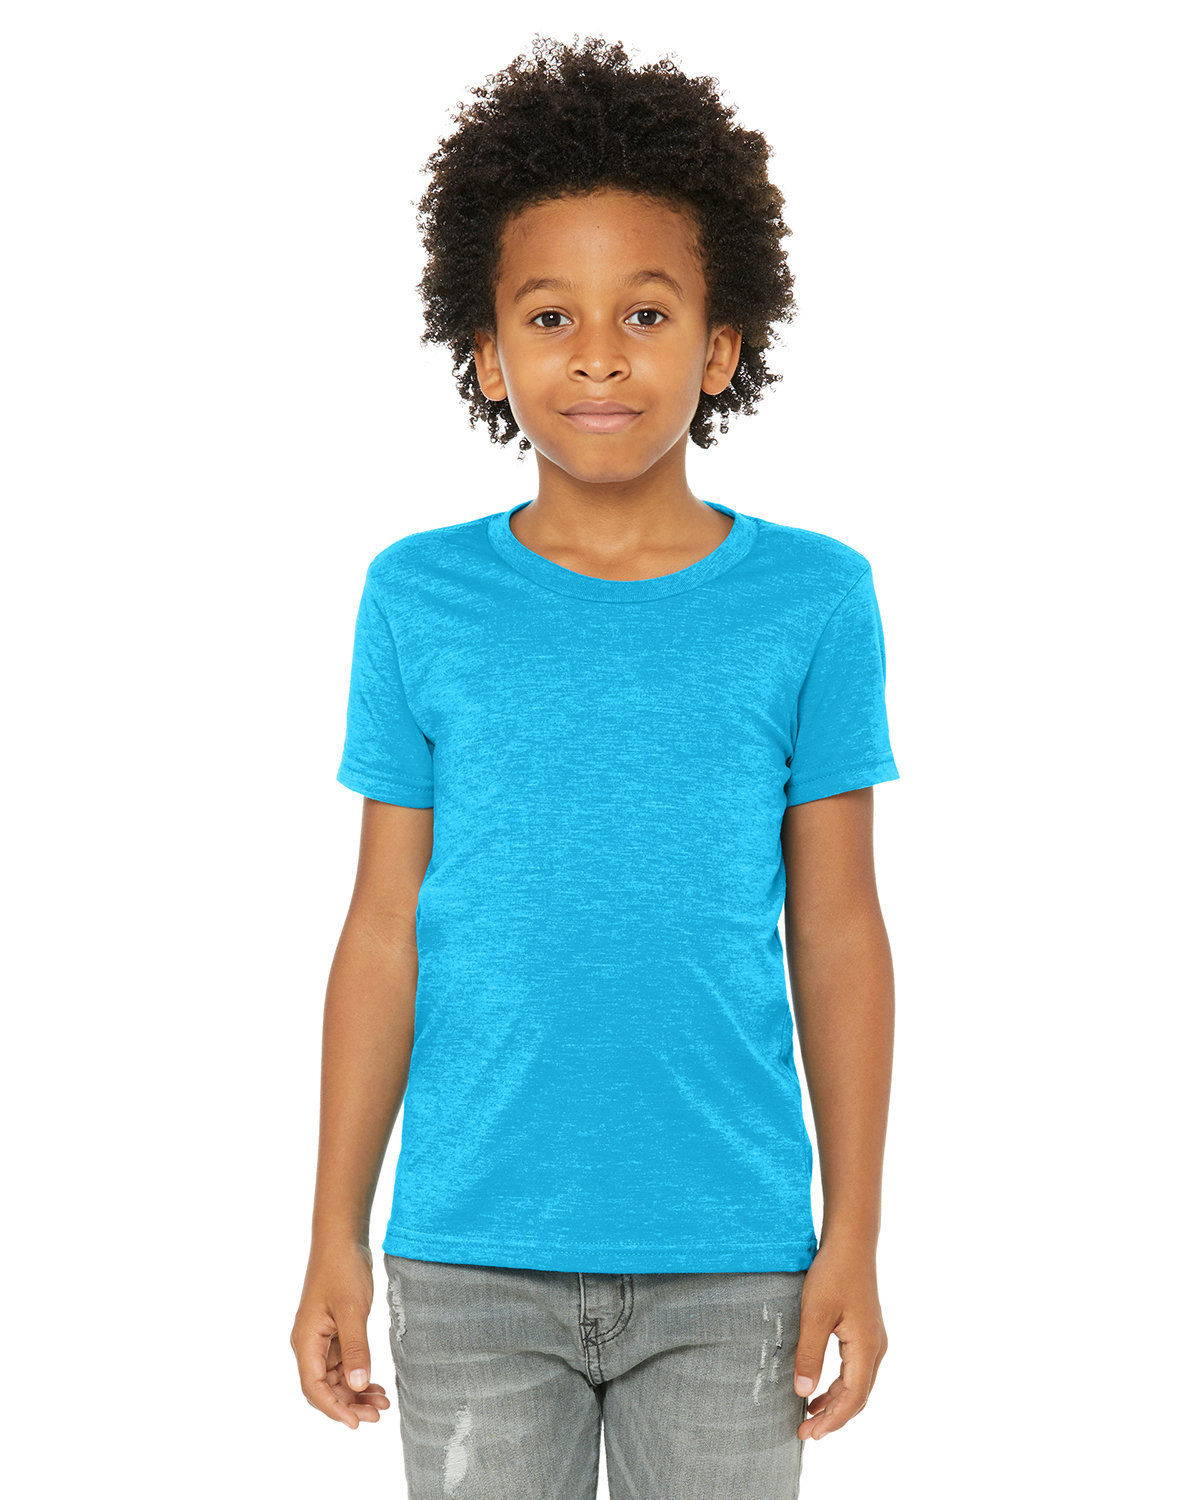 Bella + Canvas Youth Jersey T-Shirt NEON BLUE